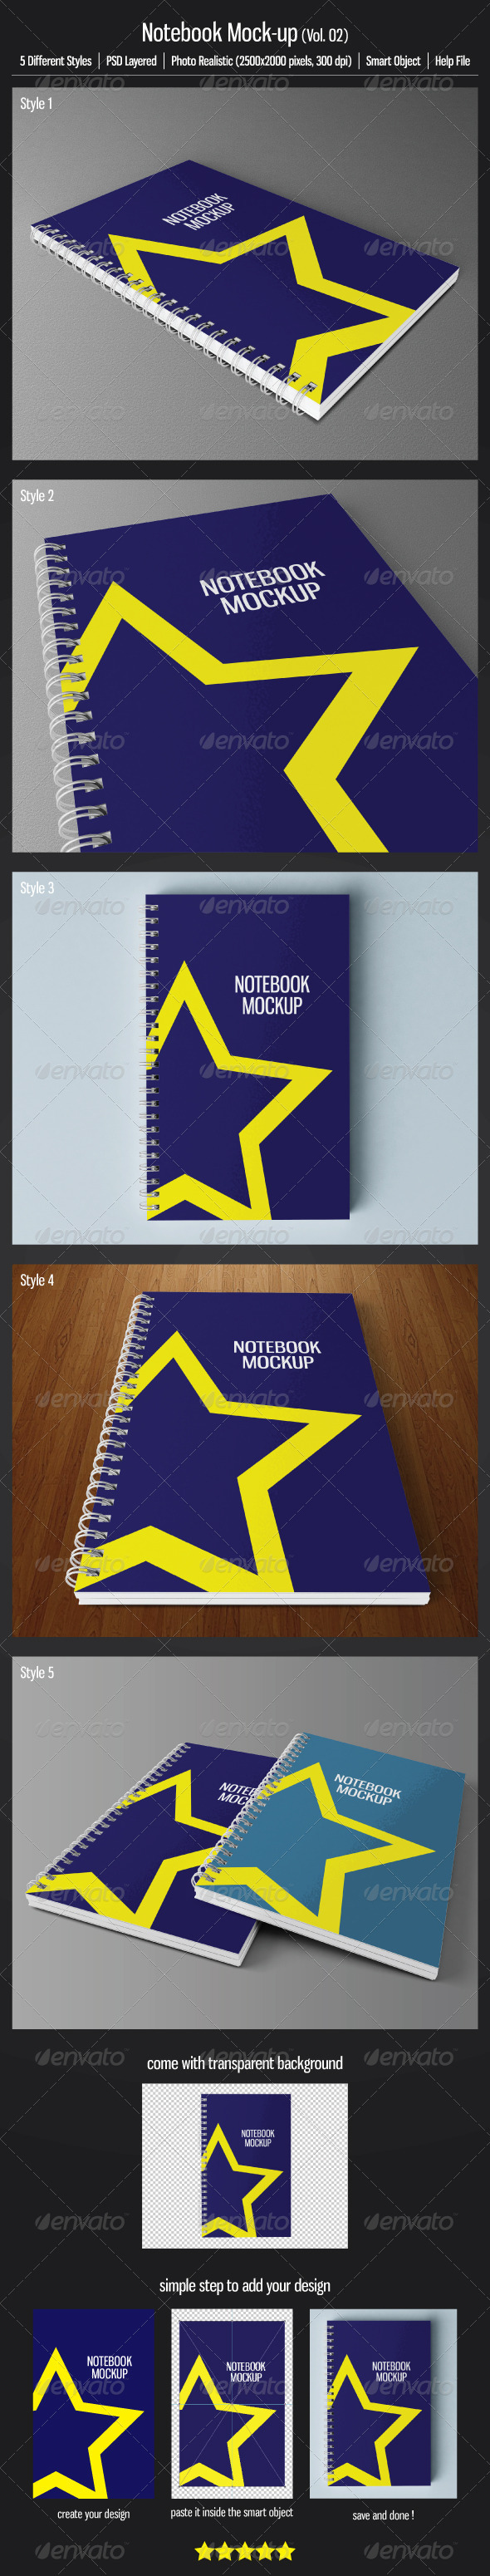 Notebook Mock-up (Vol.02) - Books Print